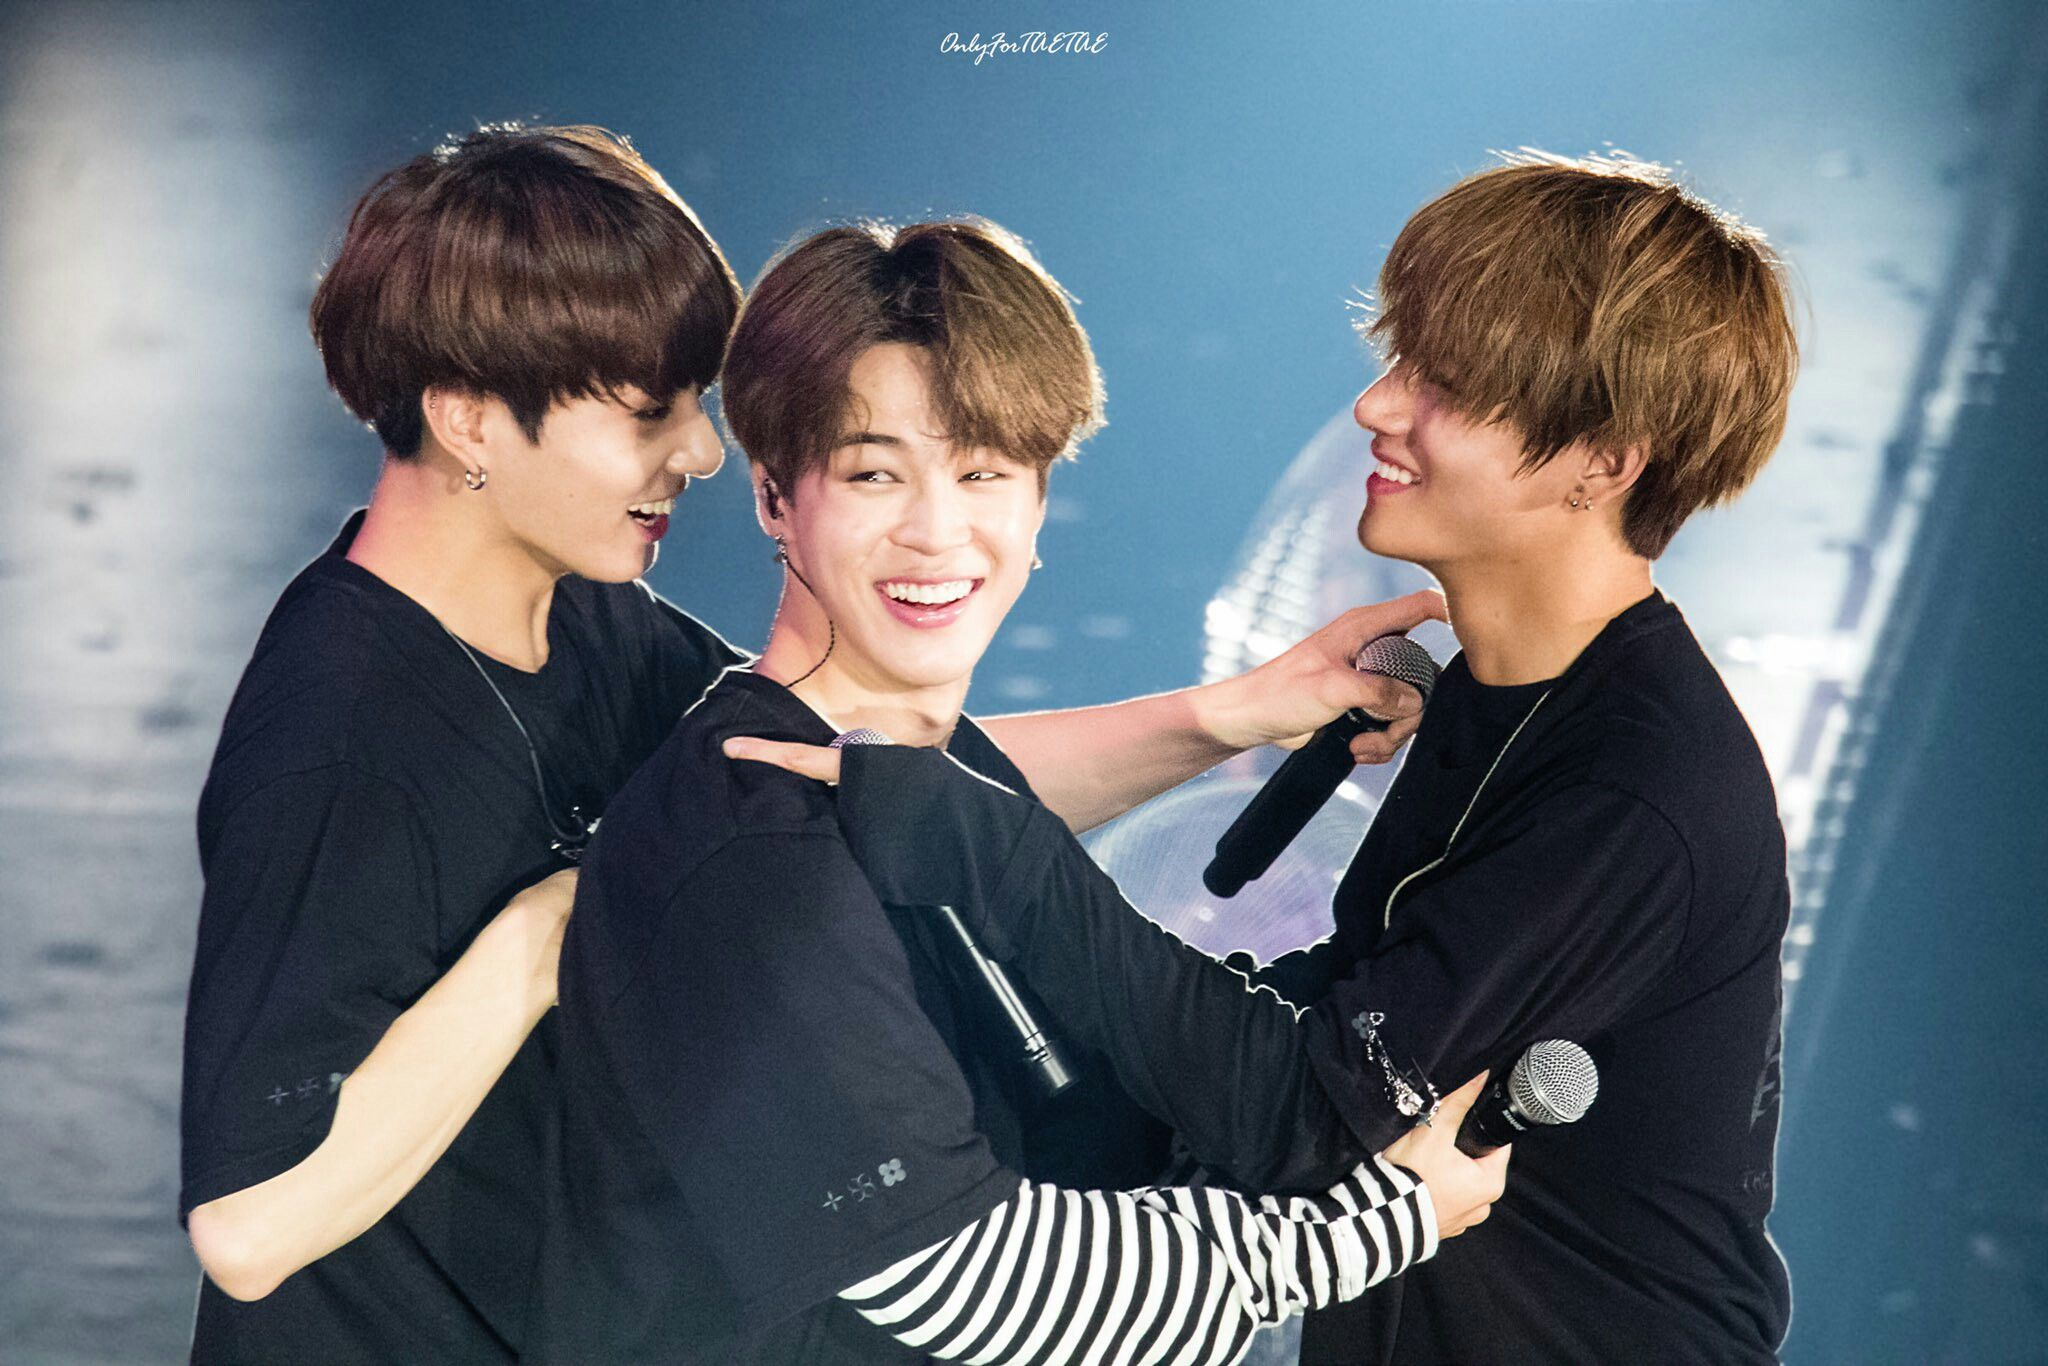 170614 Maknae Line Being The Maknae Line At The 2017 Bts Live Trilogy Episode Lll In Nagoya I Ll Get Diabetes Just Looking At Them クオズ マンネライン テテグク